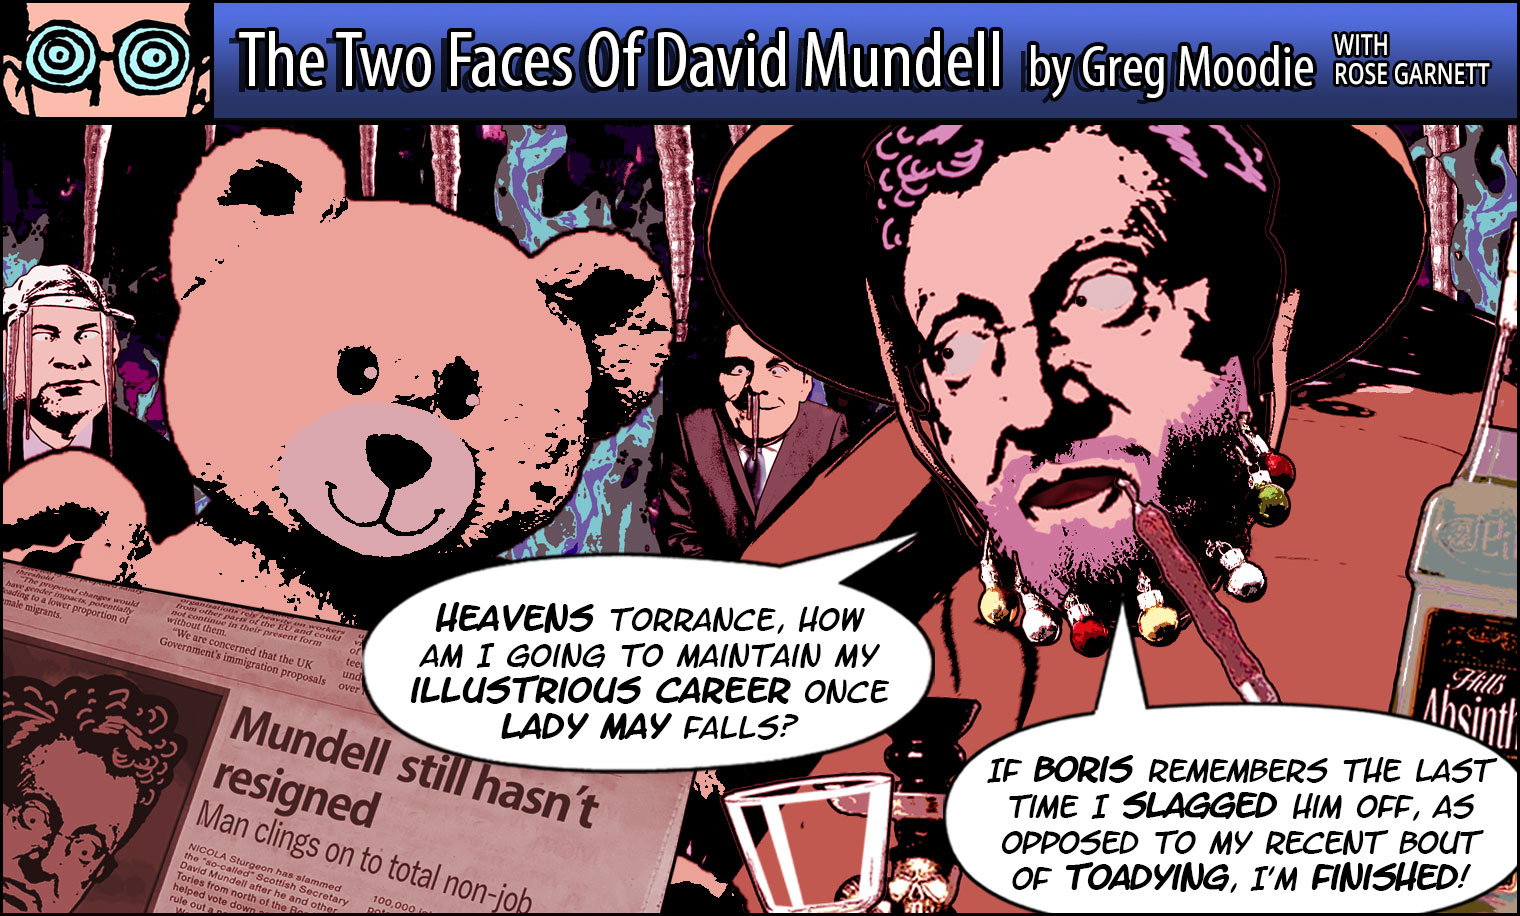 The Two Faces Of David Mundell